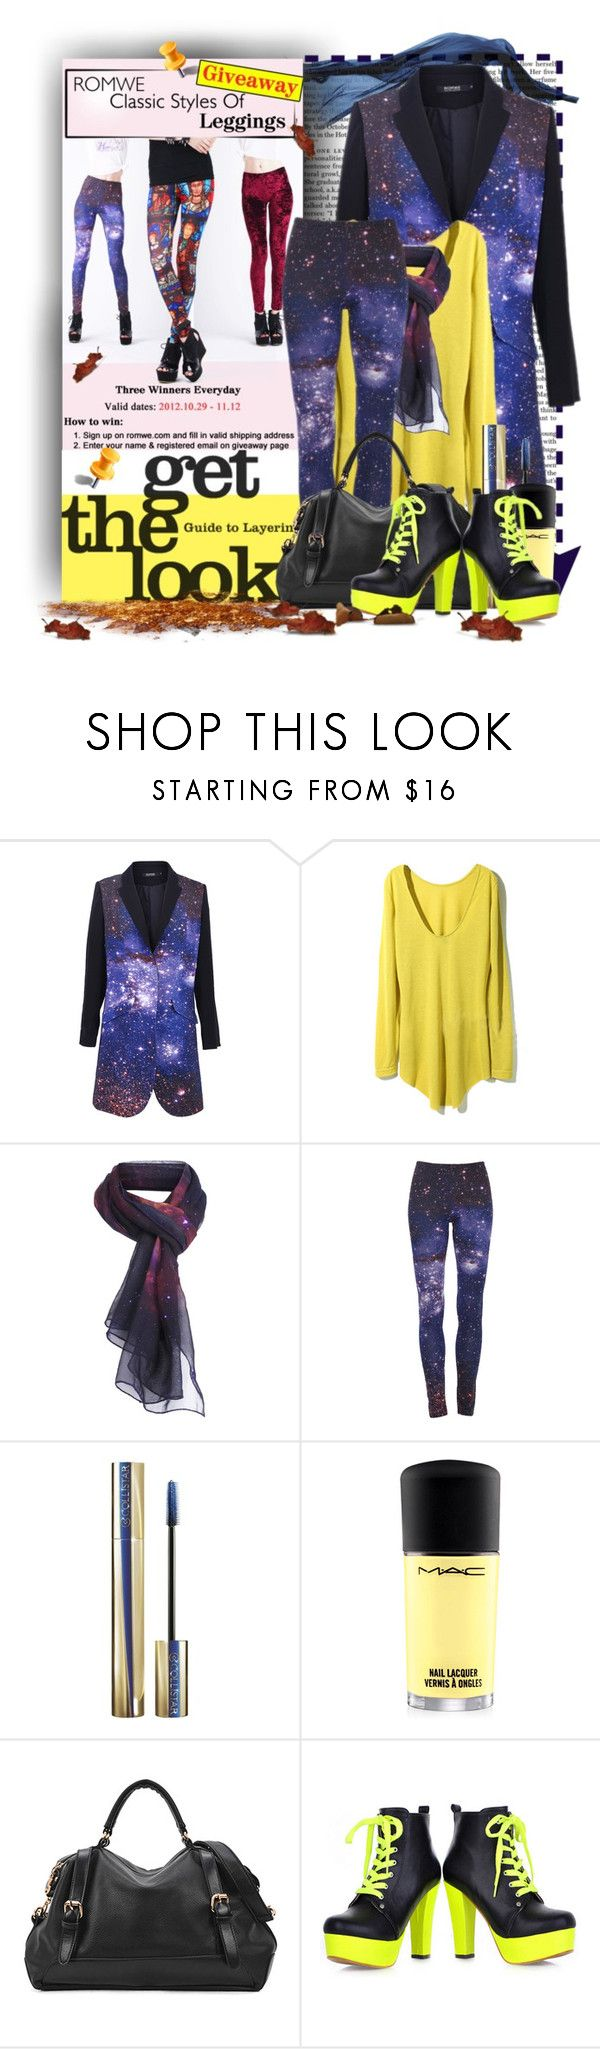 """Romwe Classic Styles Of Romwe Leggings Giveaway"" by keti-lady ❤ liked on Polyvore featuring Nicki Minaj, Collistar, MAC Cosmetics, ankle boots, galaxy print, 2012, scarf prints, leggings, handbags and romwe"